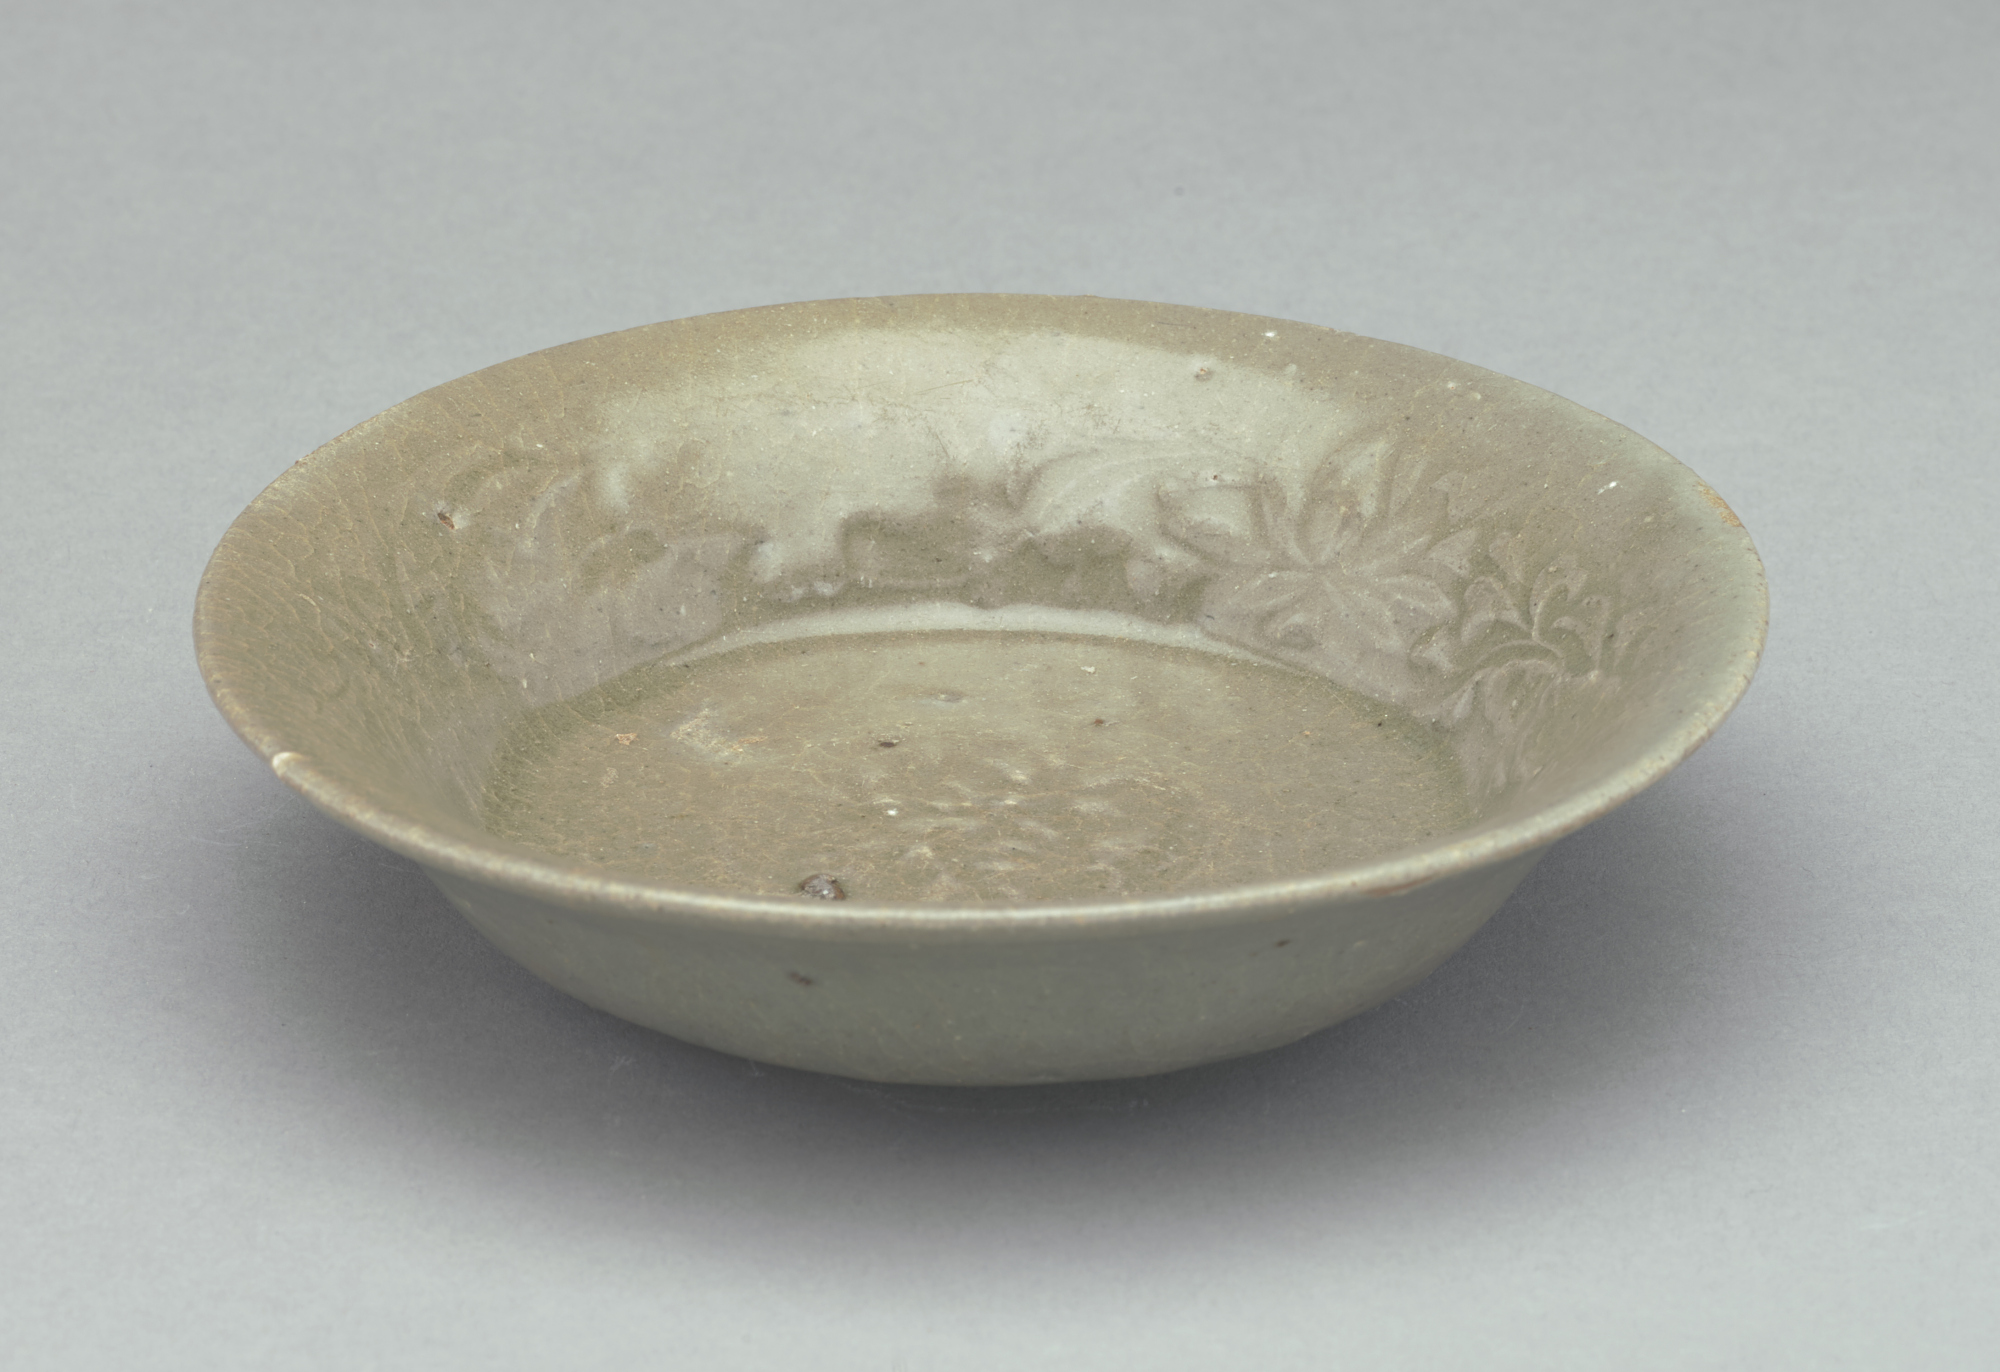 FSC-P-2794; Small dish with everted rim, broad base, no footrim, indented foot